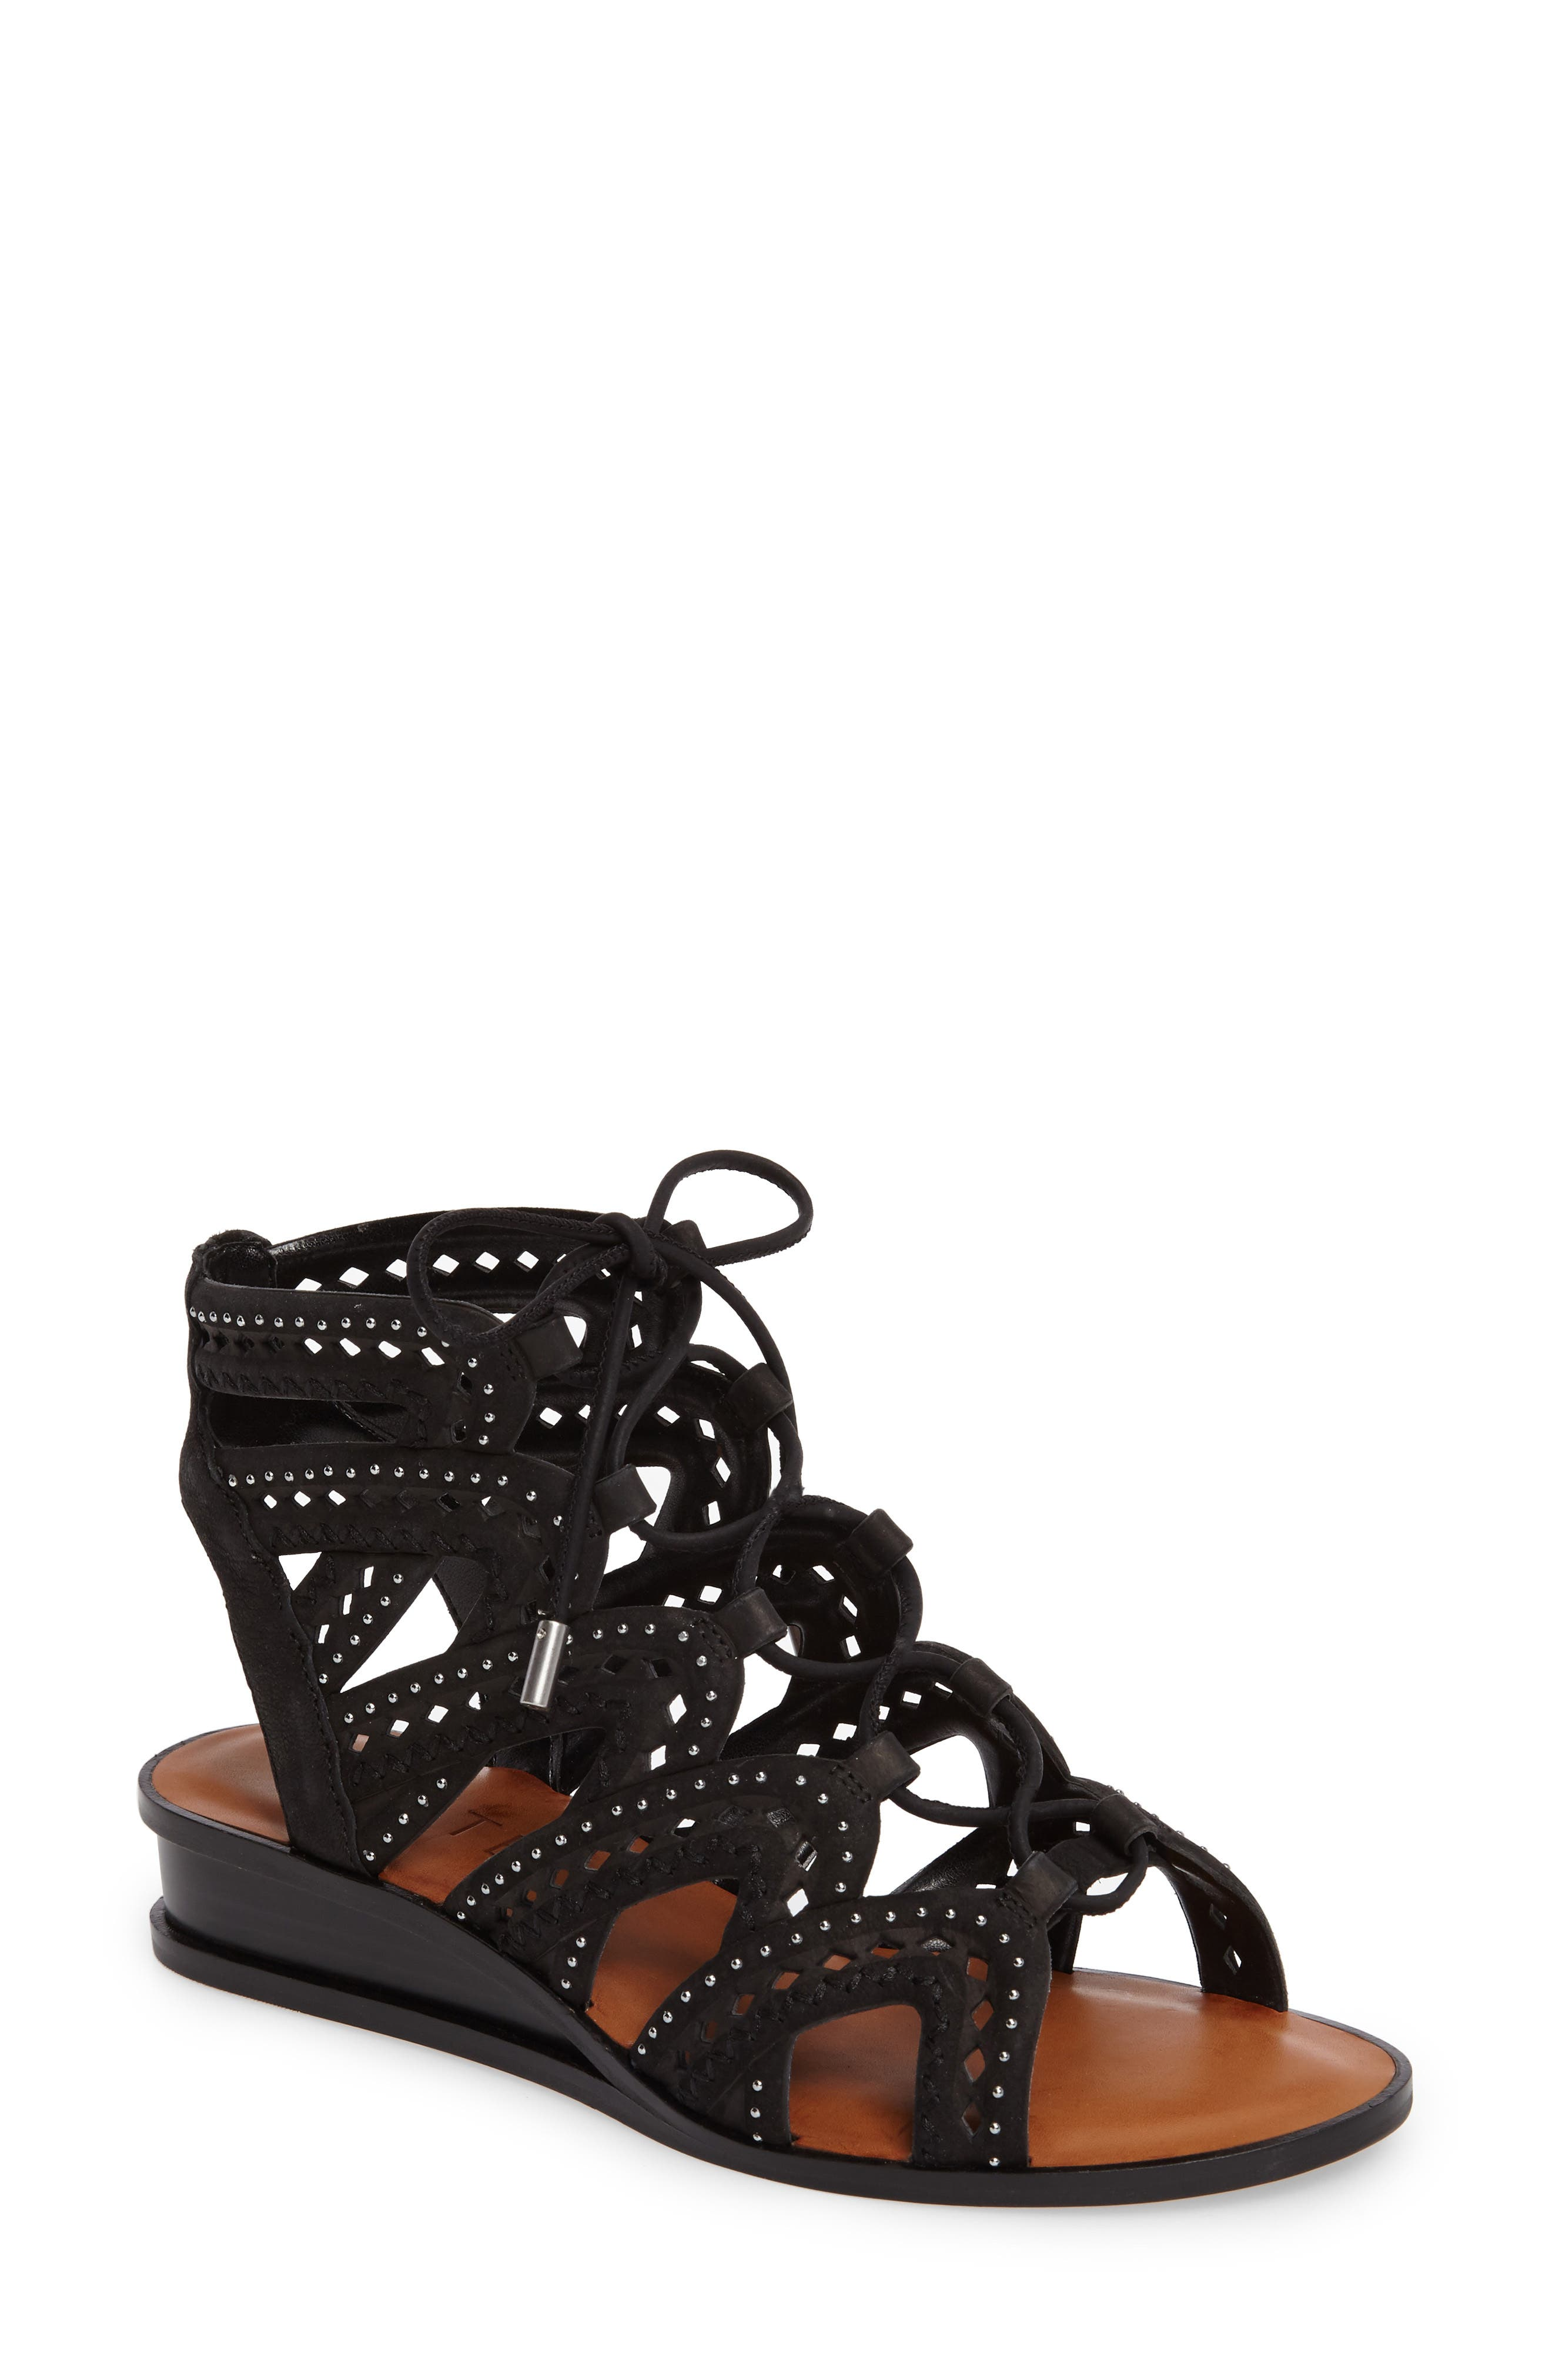 Alternate Image 1 Selected - 1.STATE Maygan Ghillie Wedge Sandal (Women)